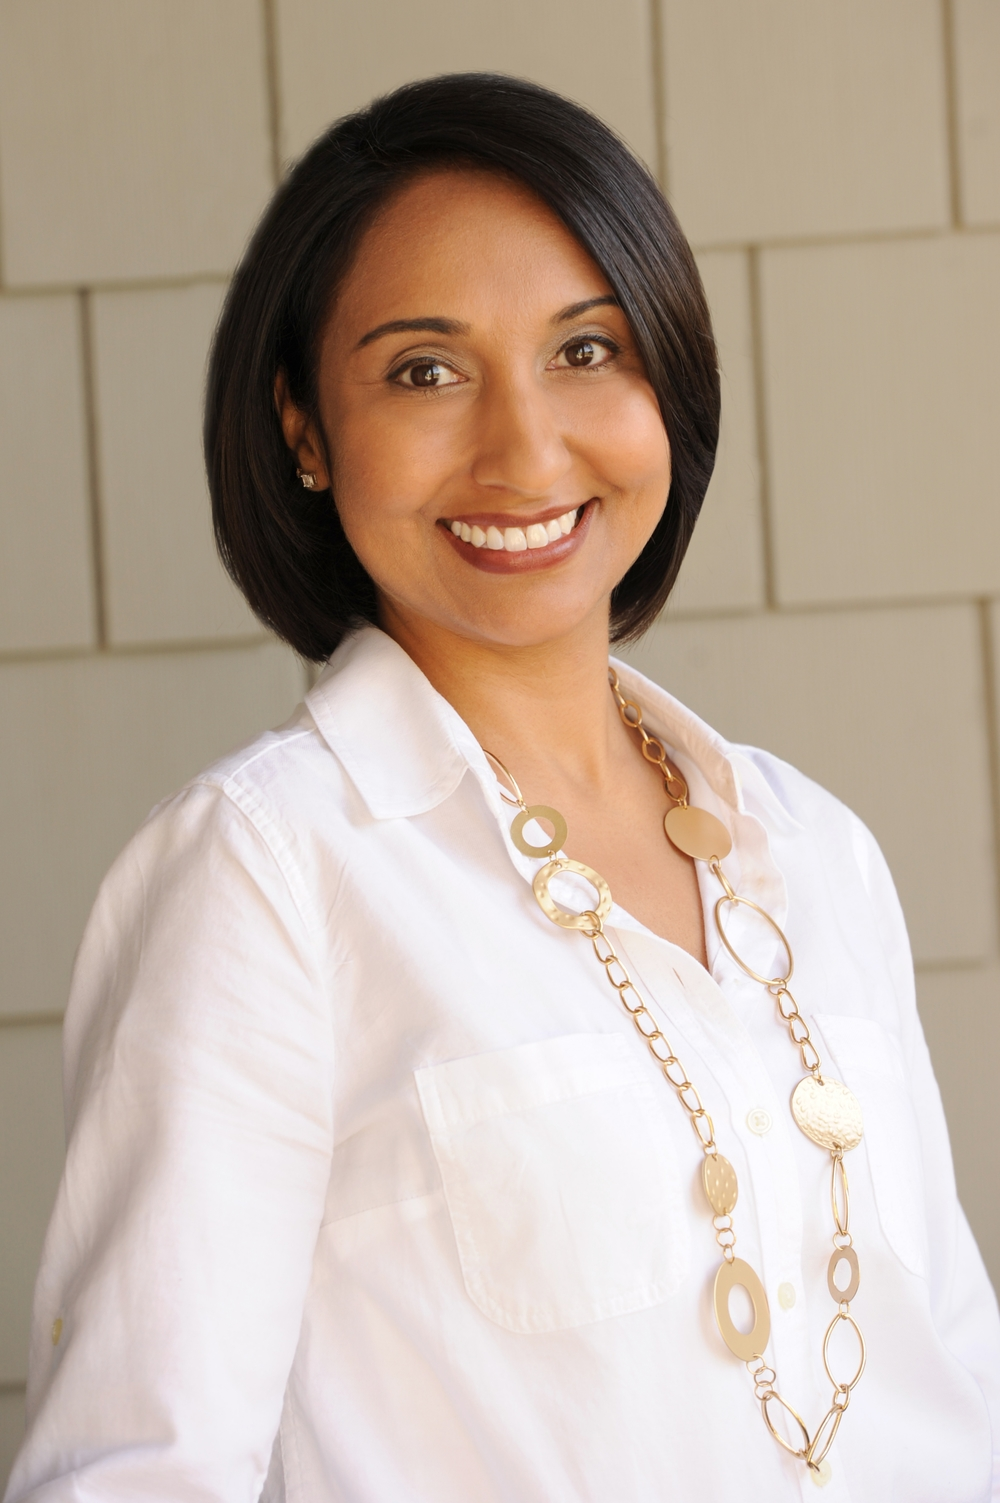 Monisha Kapur, Founder